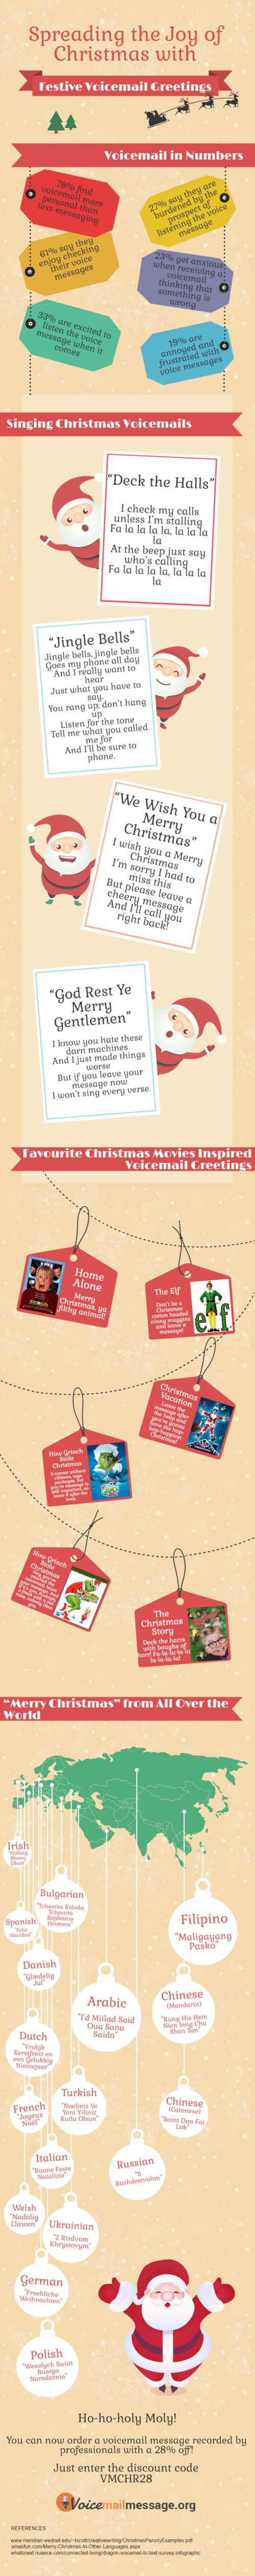 7 best voicemail greetings images on pinterest hilarious quotes httpvoicemailmessagespreading the joy of christmas with festive voicemail greetings have a look at cool christmas infographic made by voicemail m4hsunfo